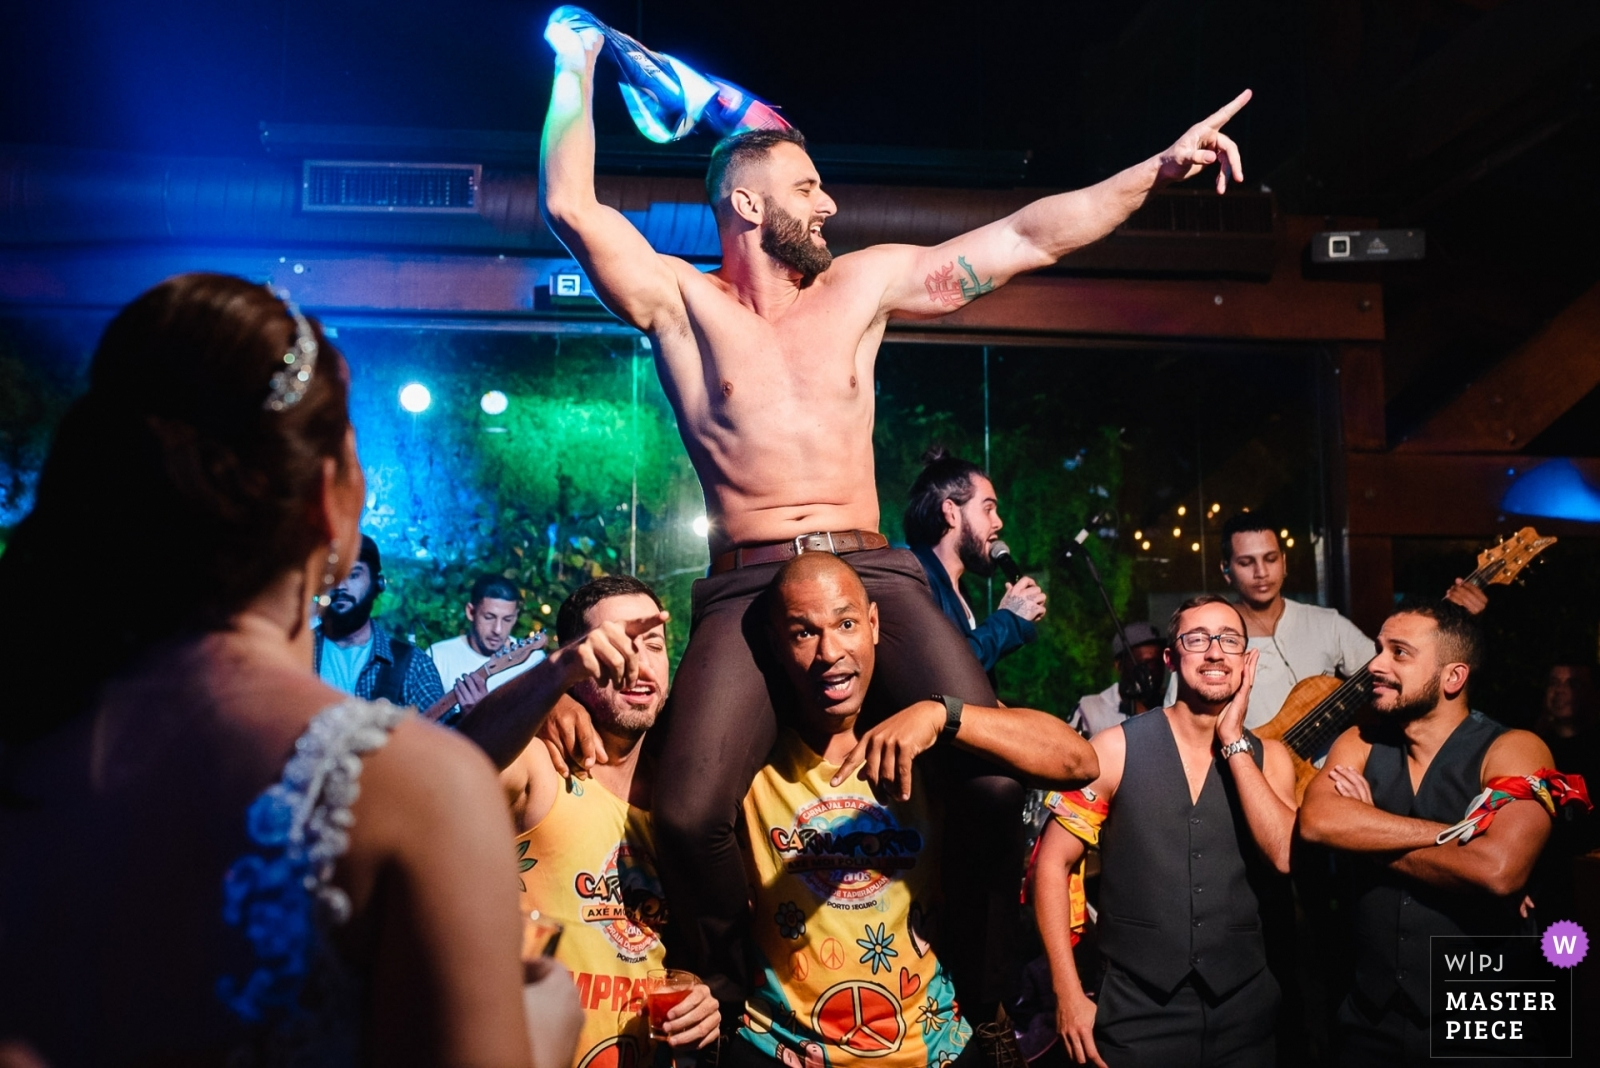 That moment when the groom takes off his shirt and the wedding turns into a carnival. - Rio de Janeiro, Brazil Wedding Photography -    Vale dos Sonhos - Rio de Janeiro - Brazil